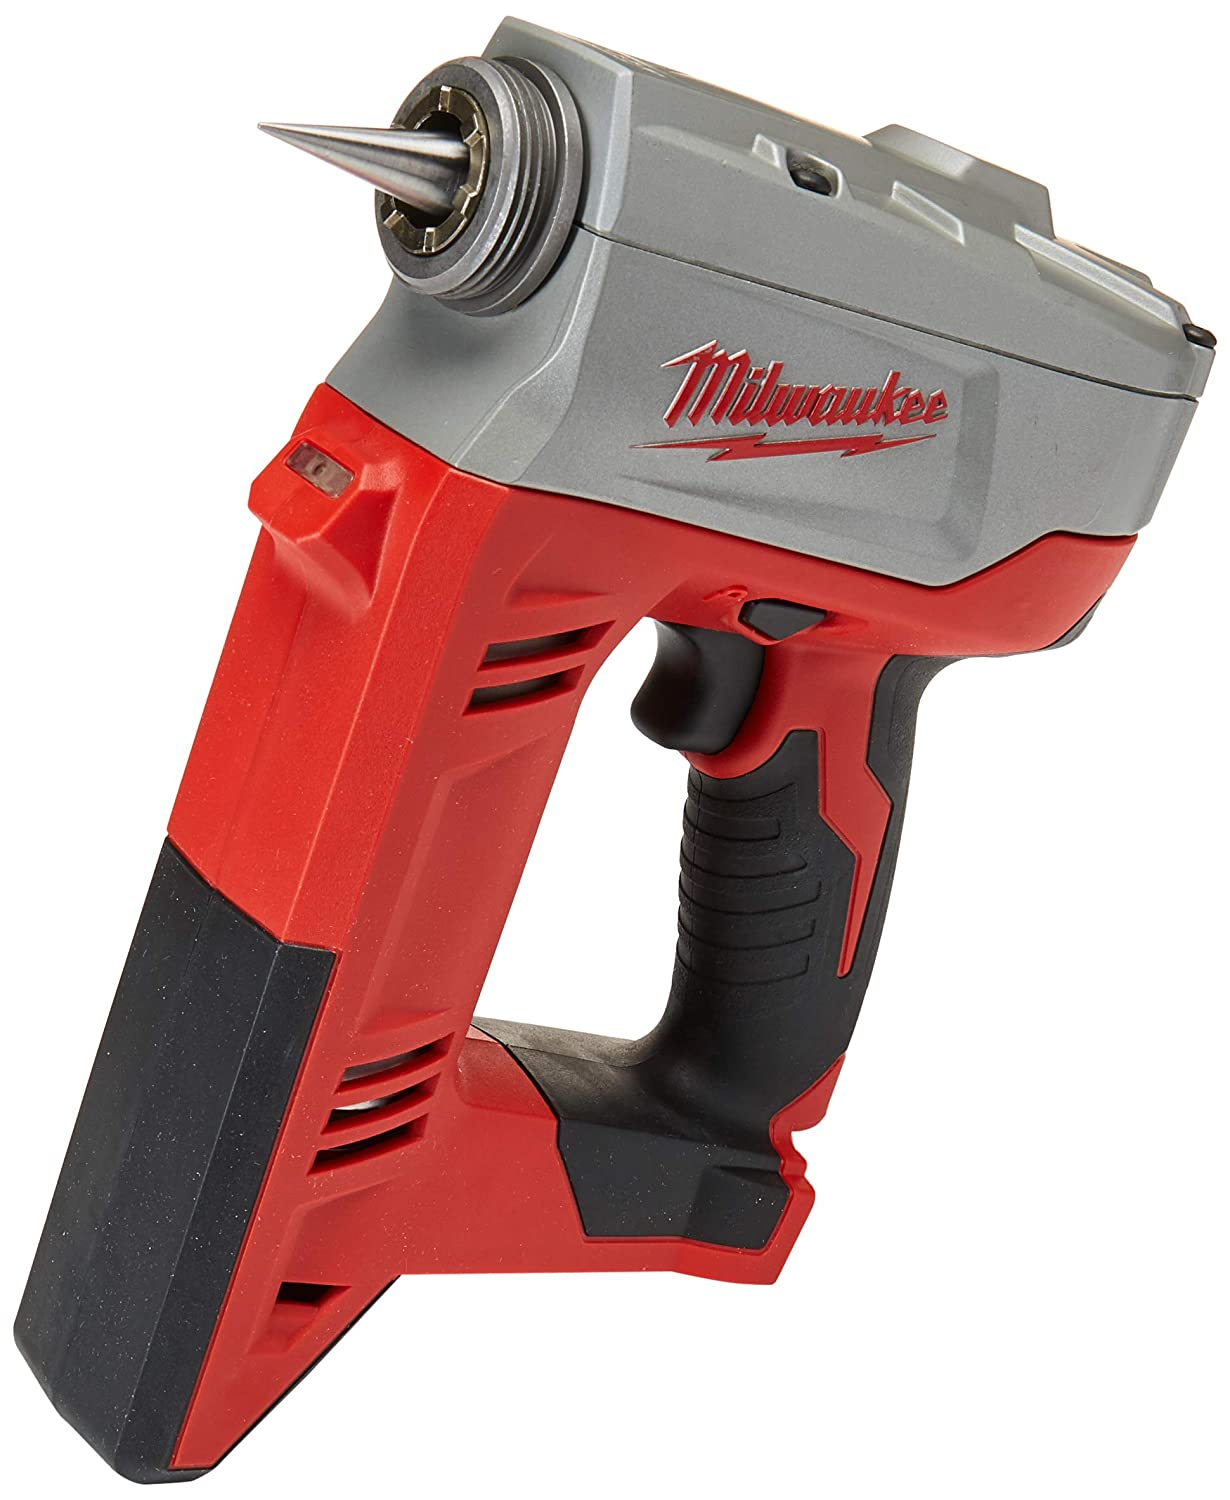 Bare-Tool Milwaukee 2632-20 M18 18-Volt Propex Expansion Tool Tool Only, No Battery